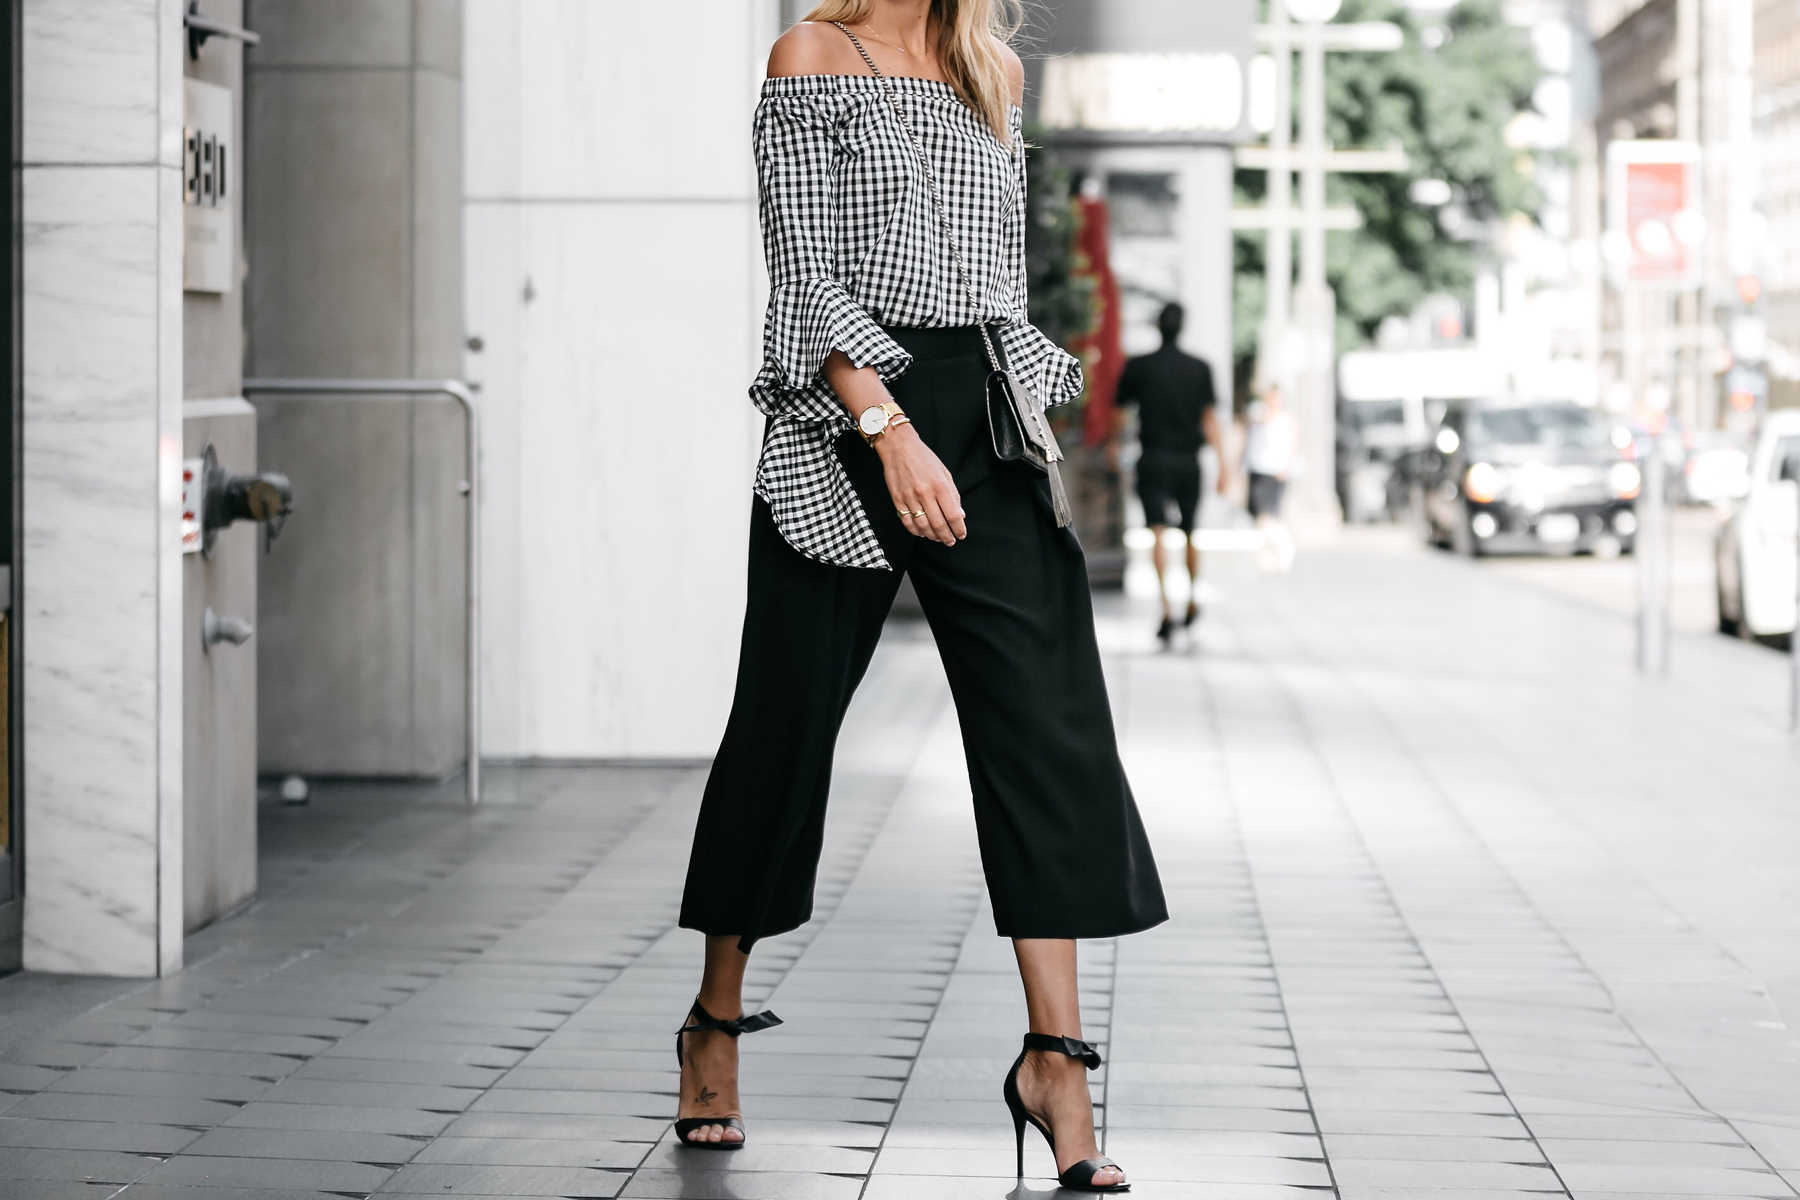 e9ee1b96708 Blonde woman wearing nordstrom gingham off-the-shoulder top topshop black  culottes outfit black